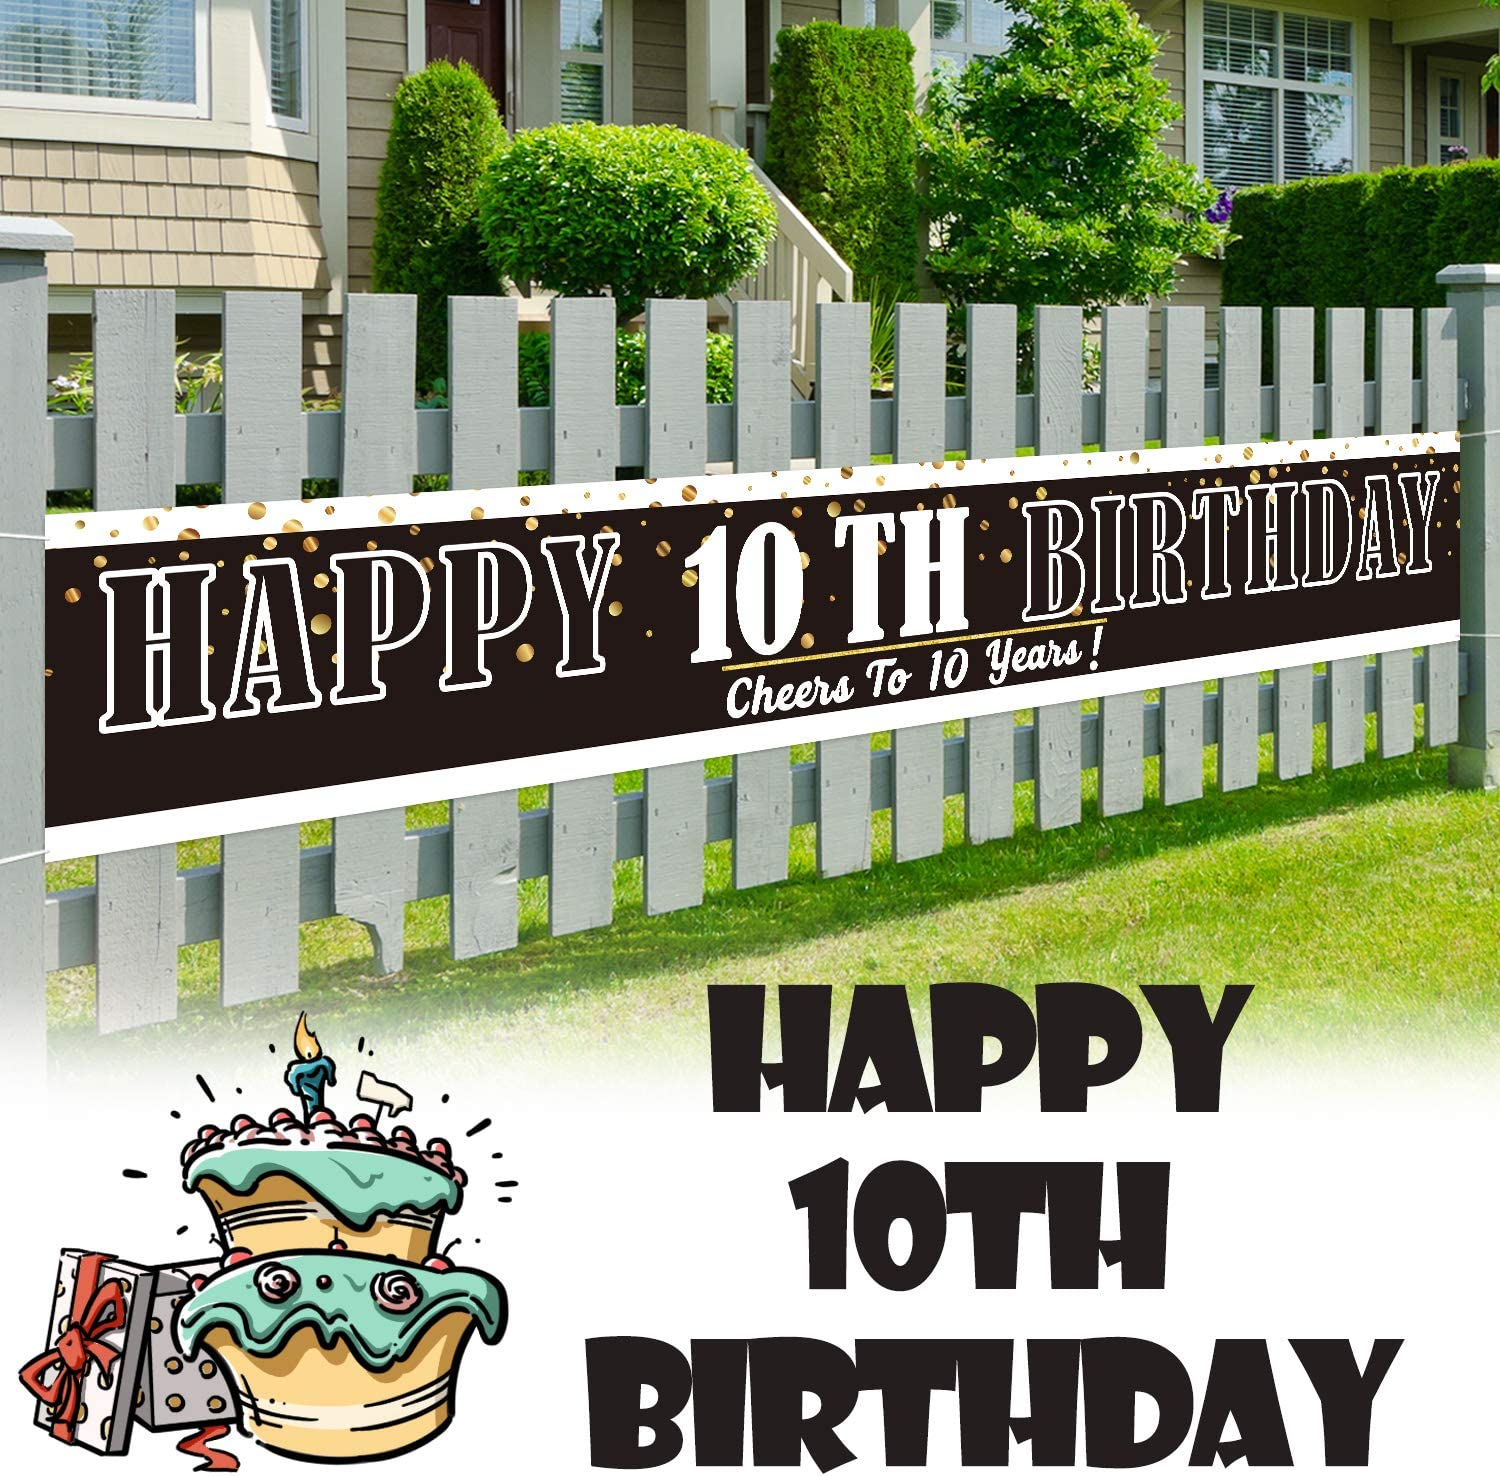 LINGPAR 9.8 x 1.6 ft Large Sign Happy 10th Birthday Banner - Cheers to 10 Years Old Decor